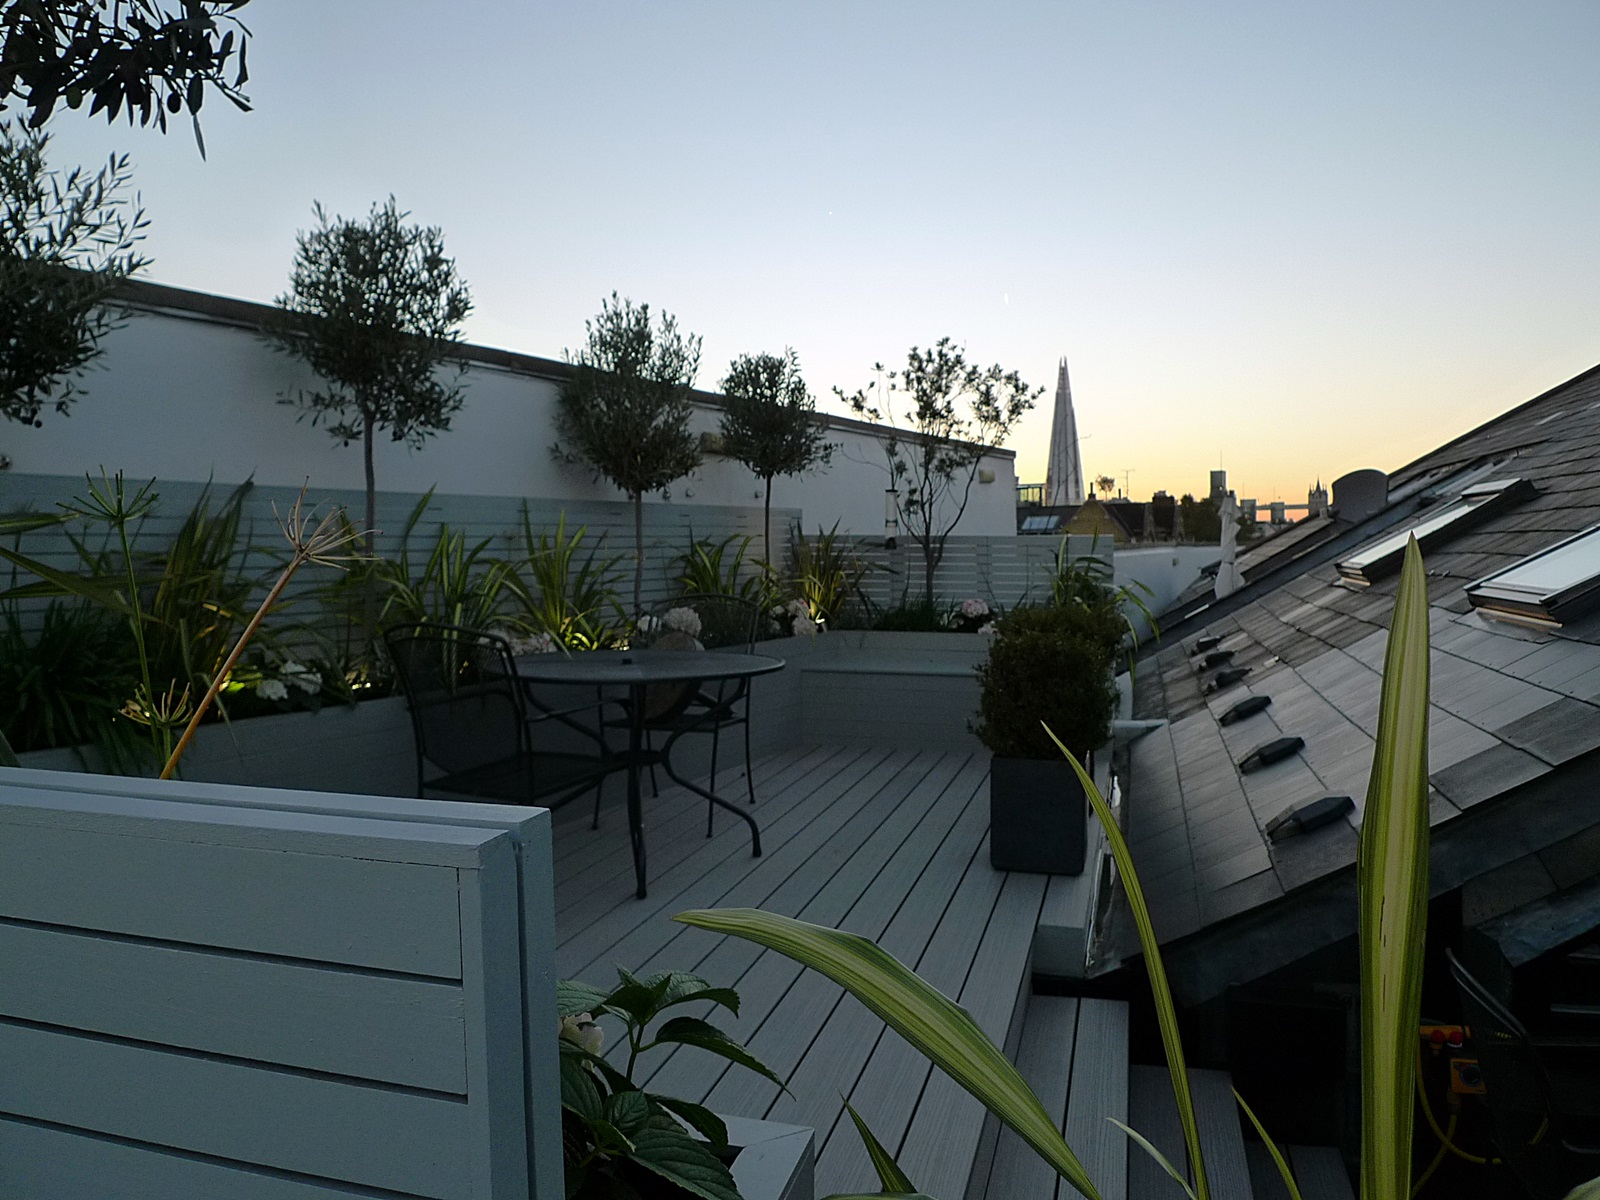 hardwood screen trellis horizontal slats painted grey raised beds composite grey decking roof terrace garden design chelsea fulham tower bridge docklands london